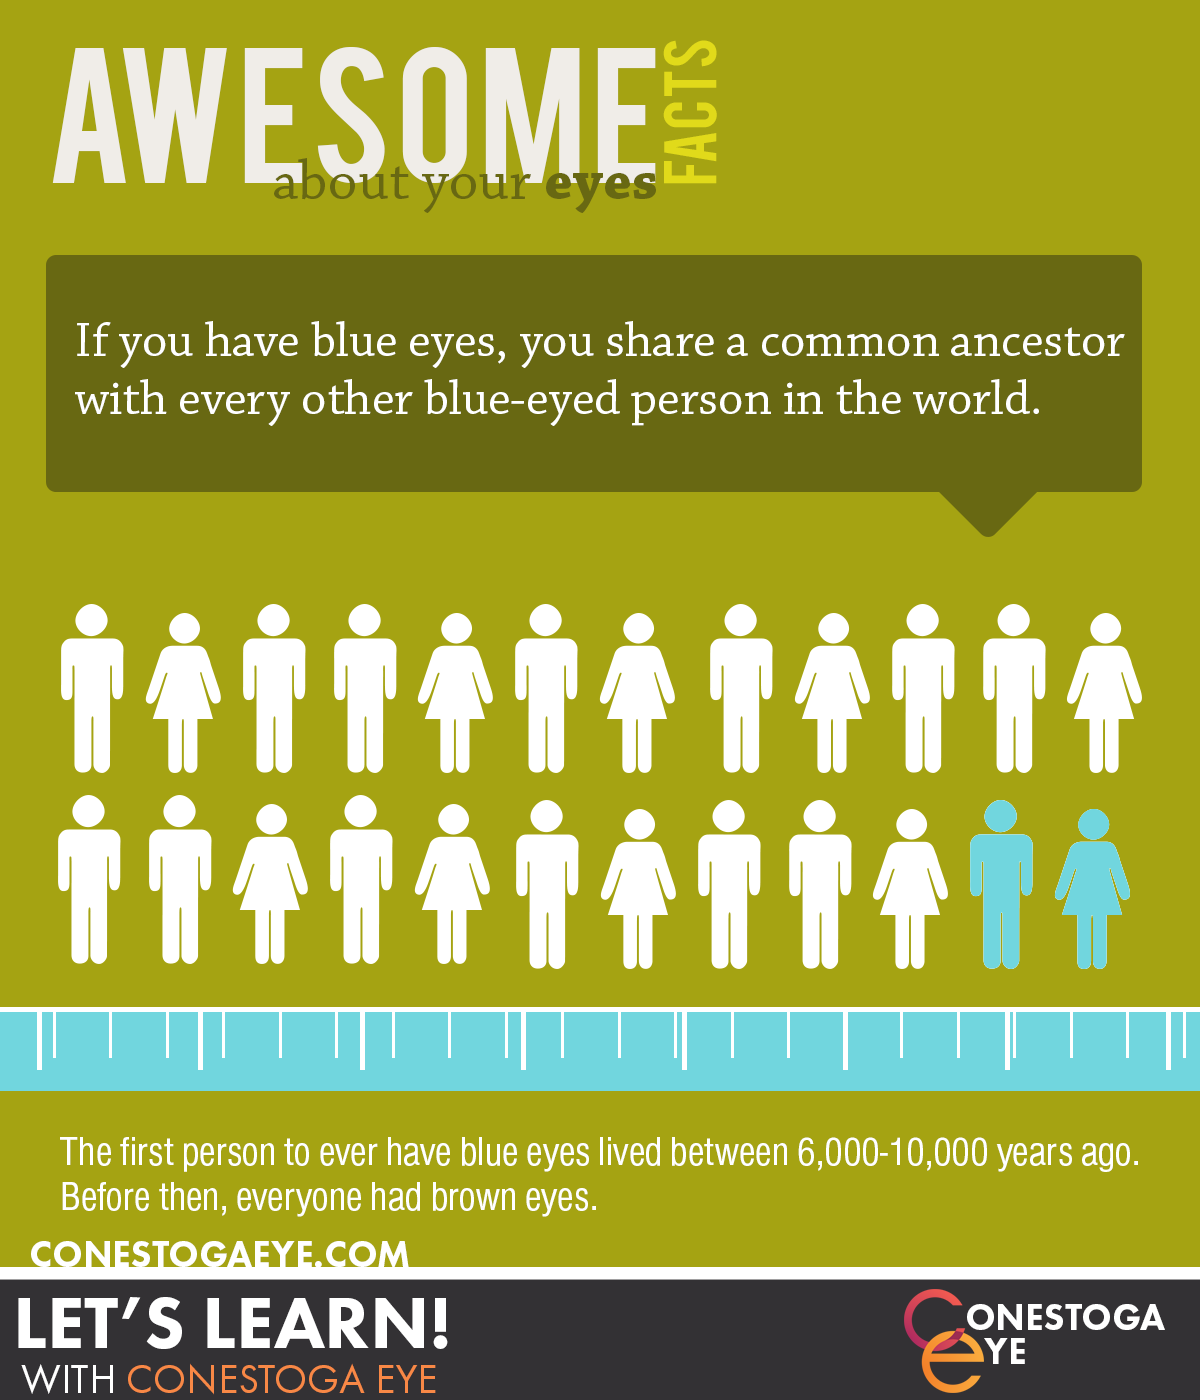 AwesomeFacts2